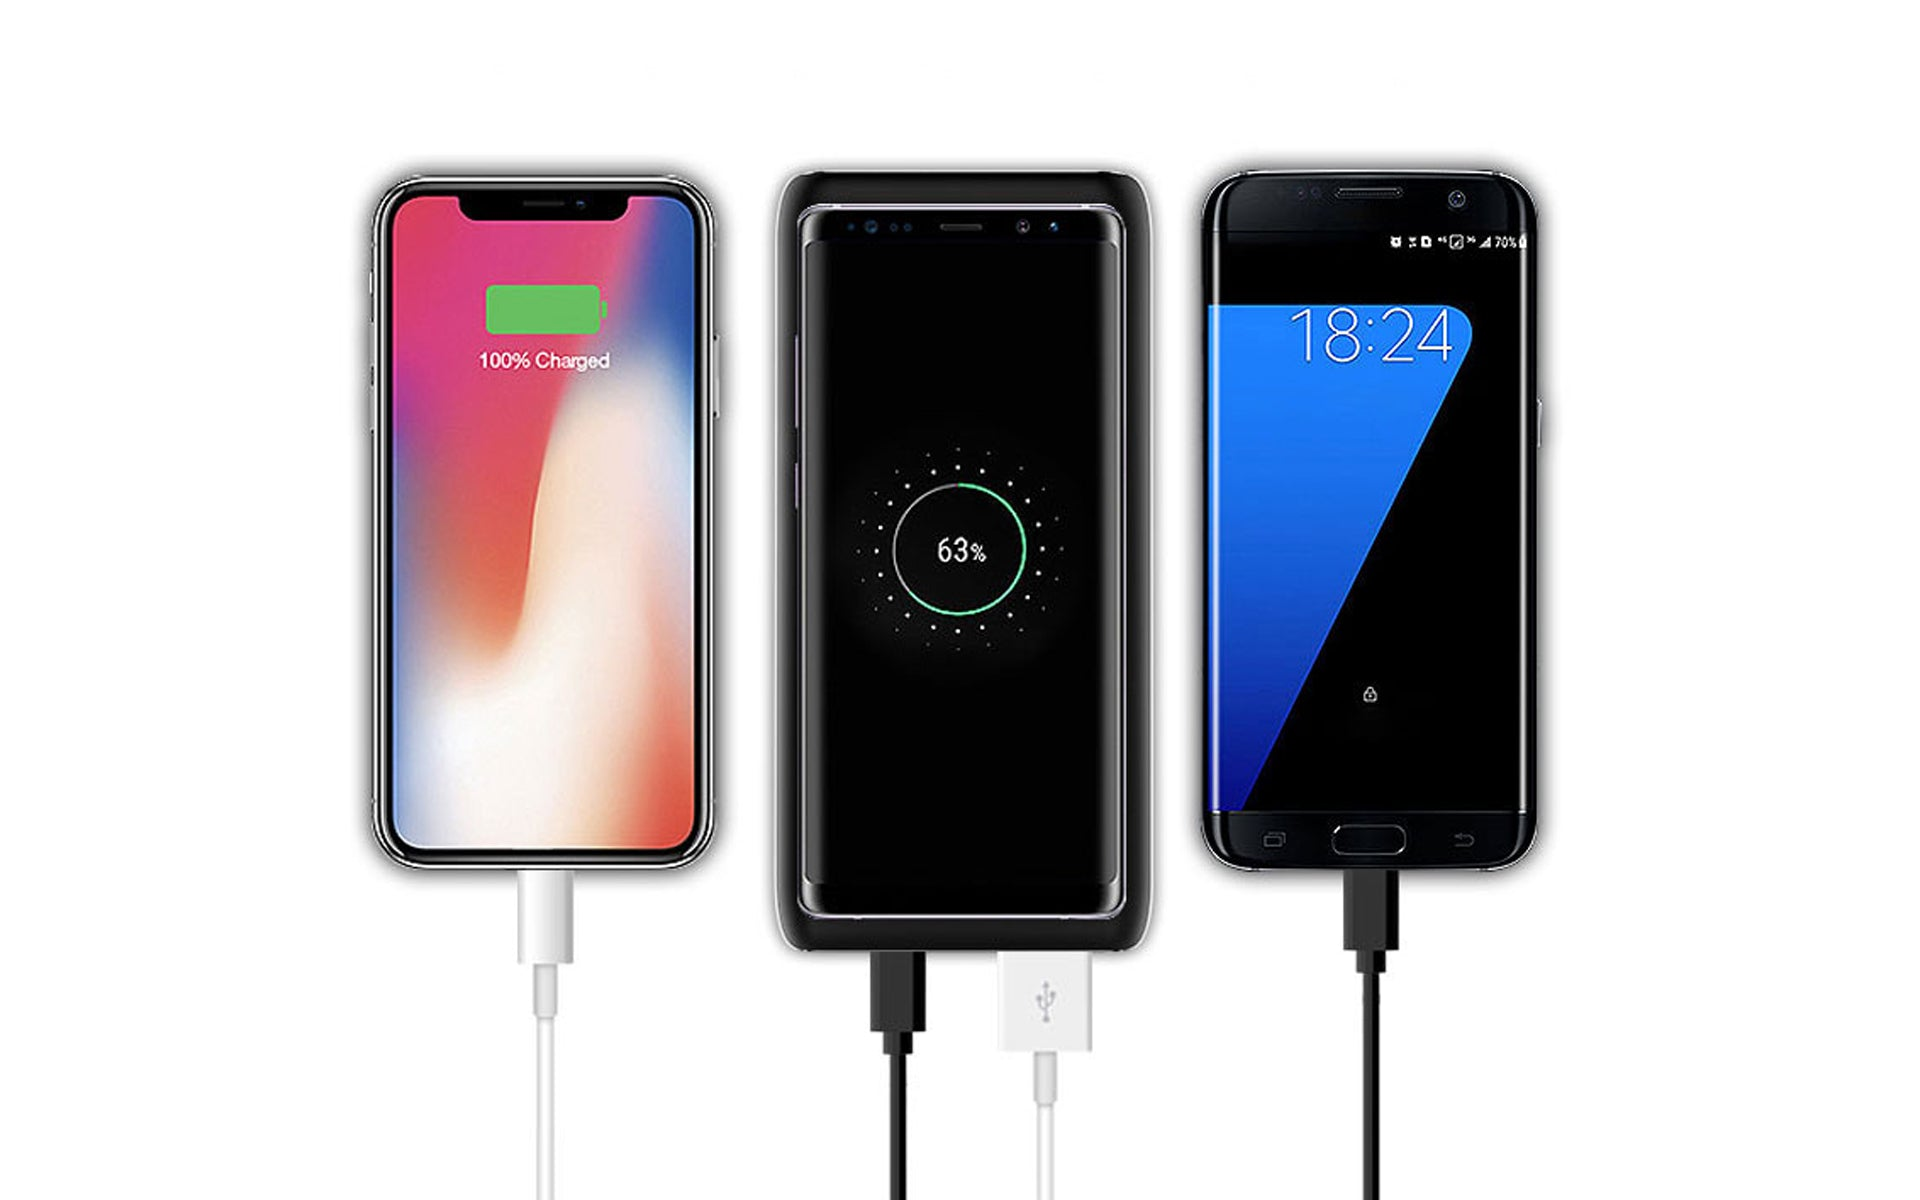 Loowoko Wireless Charging Power Bank